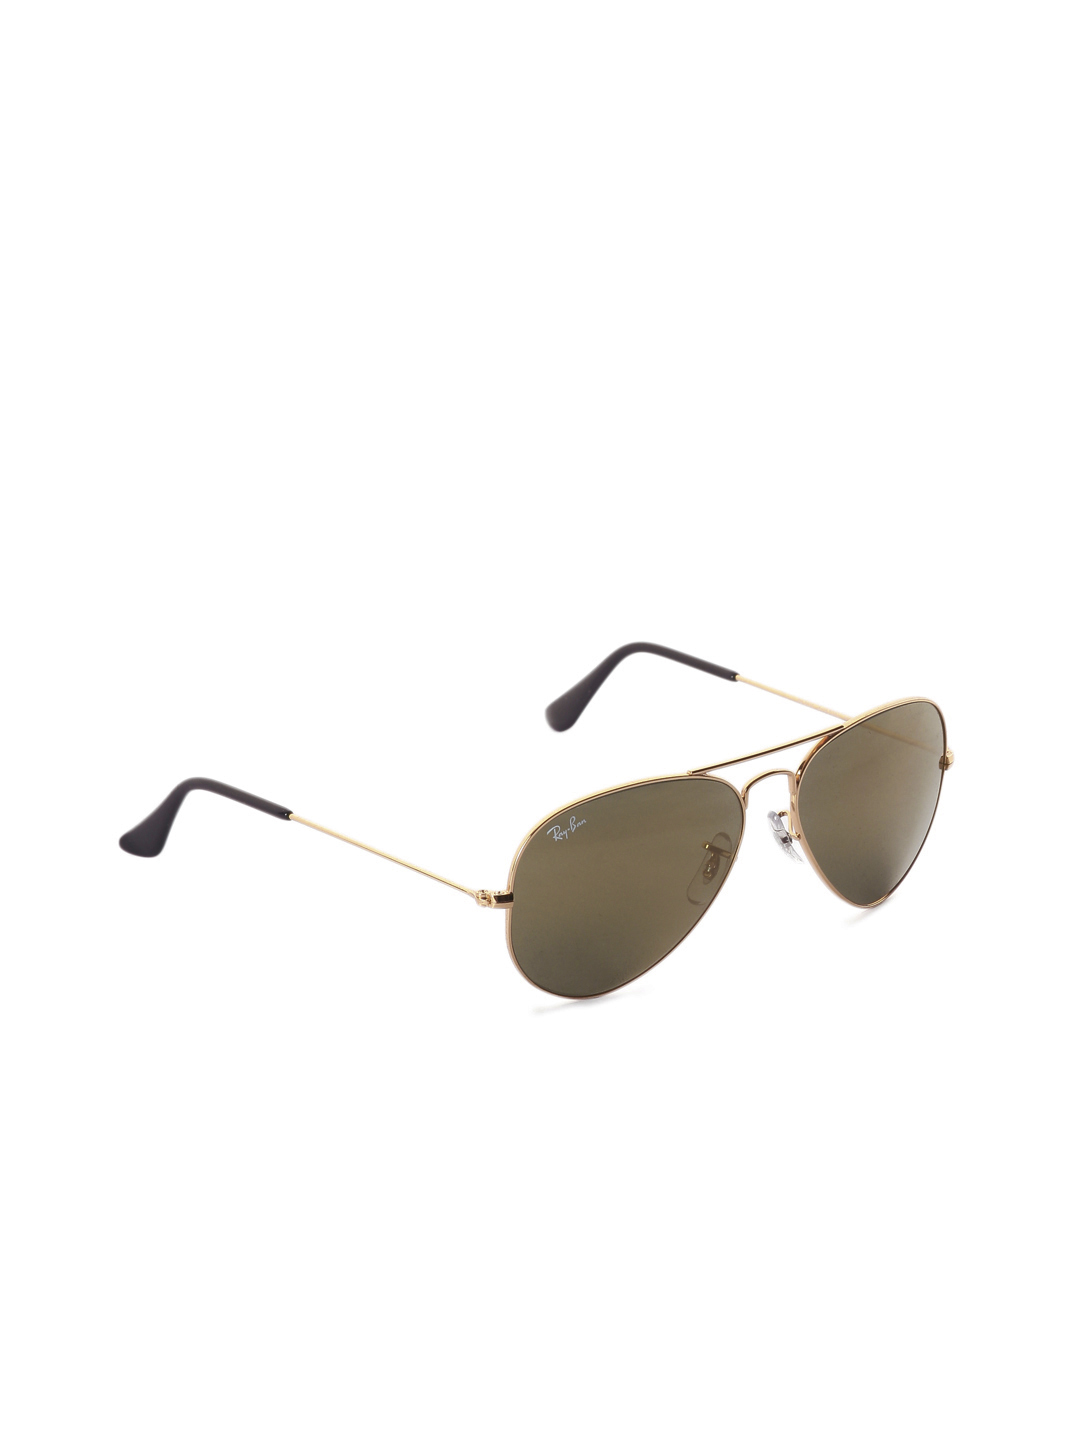 Ray-Ban Men Aviator Gold Sunglasses